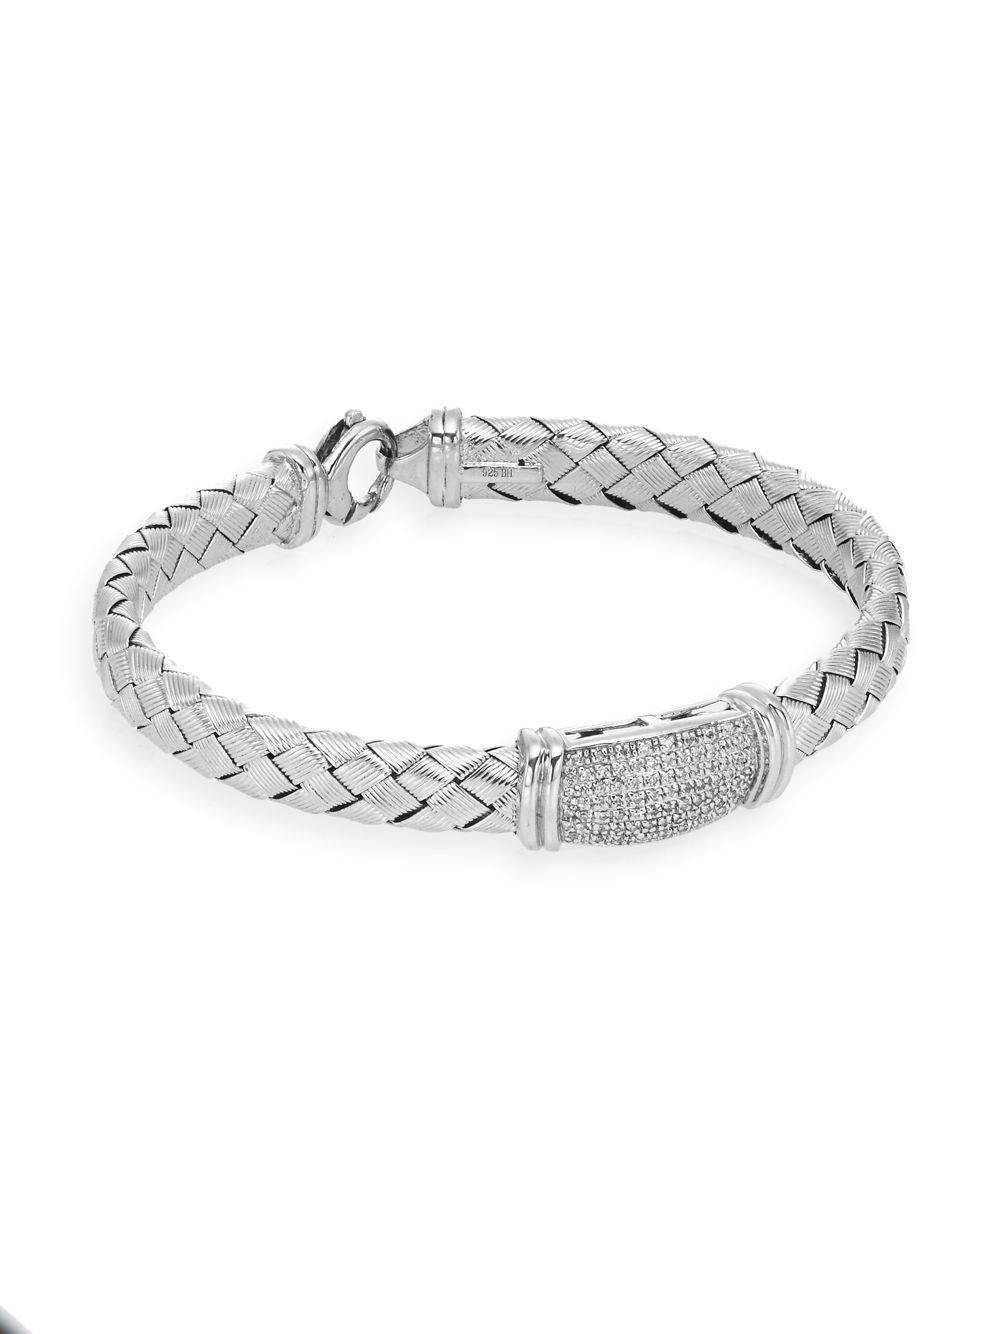 zm diamond to sterling hover kaystore mv diamonds en tw silver kay bangles bracelets zoom bangle bracelet ct